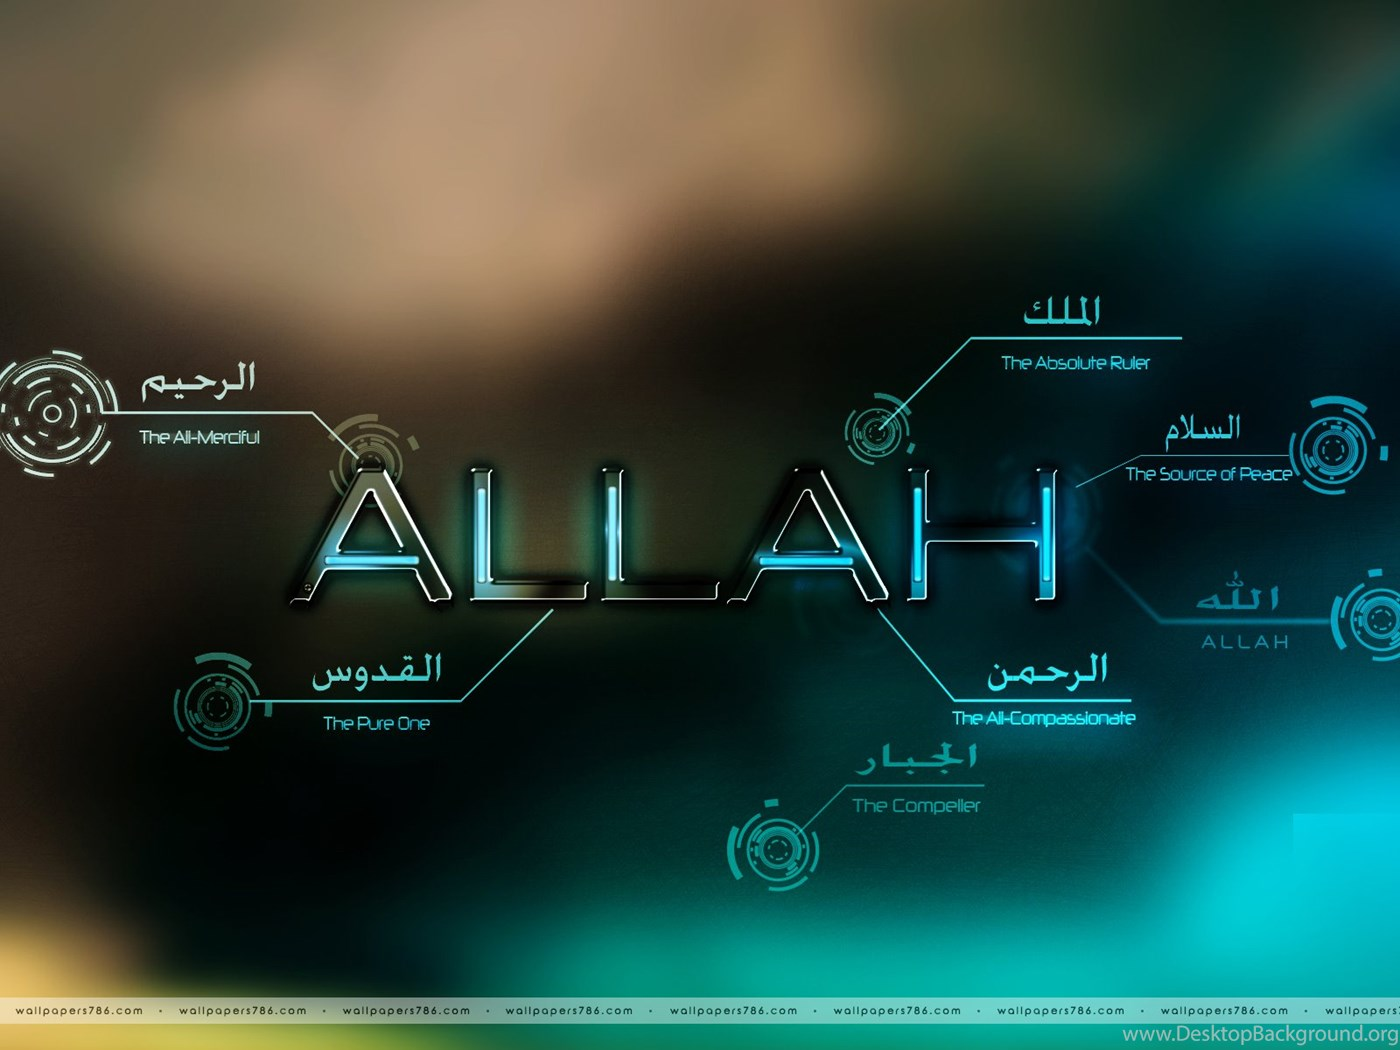 Allah name wallpapers hd free download islamic wallpapers desktop background - Name wallpapers free download ...